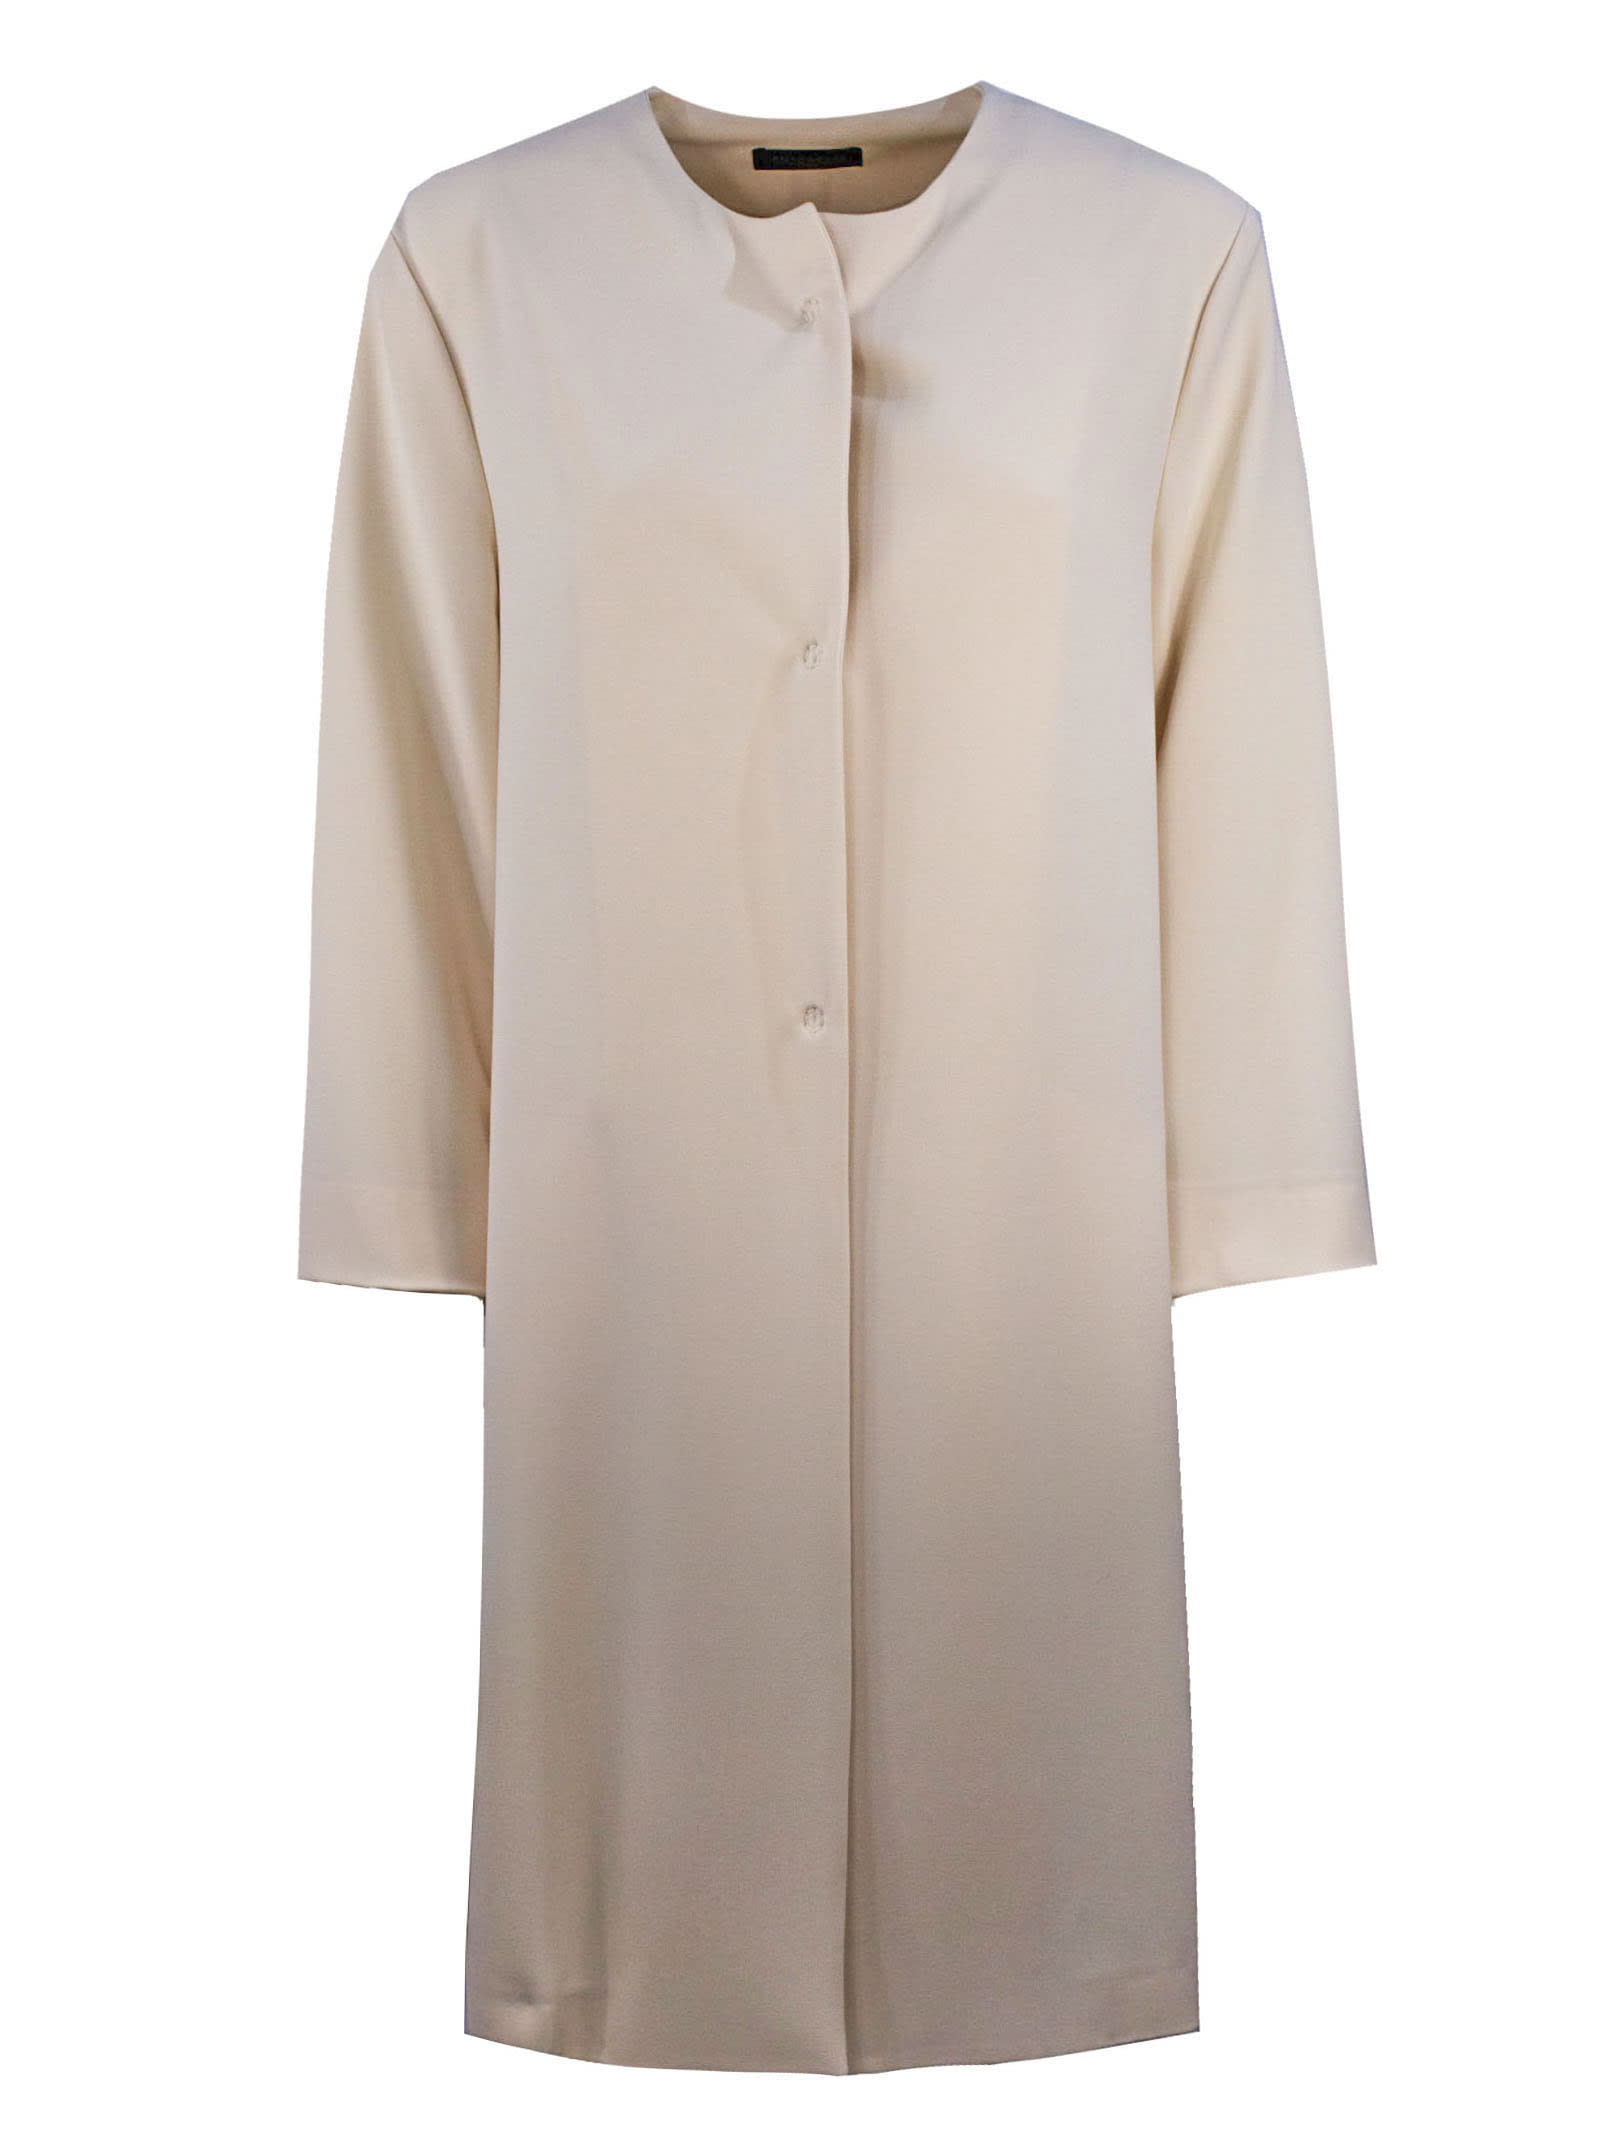 Buy Antonelli Dress In Soft Cream-tone Fabric online, shop Antonelli with free shipping